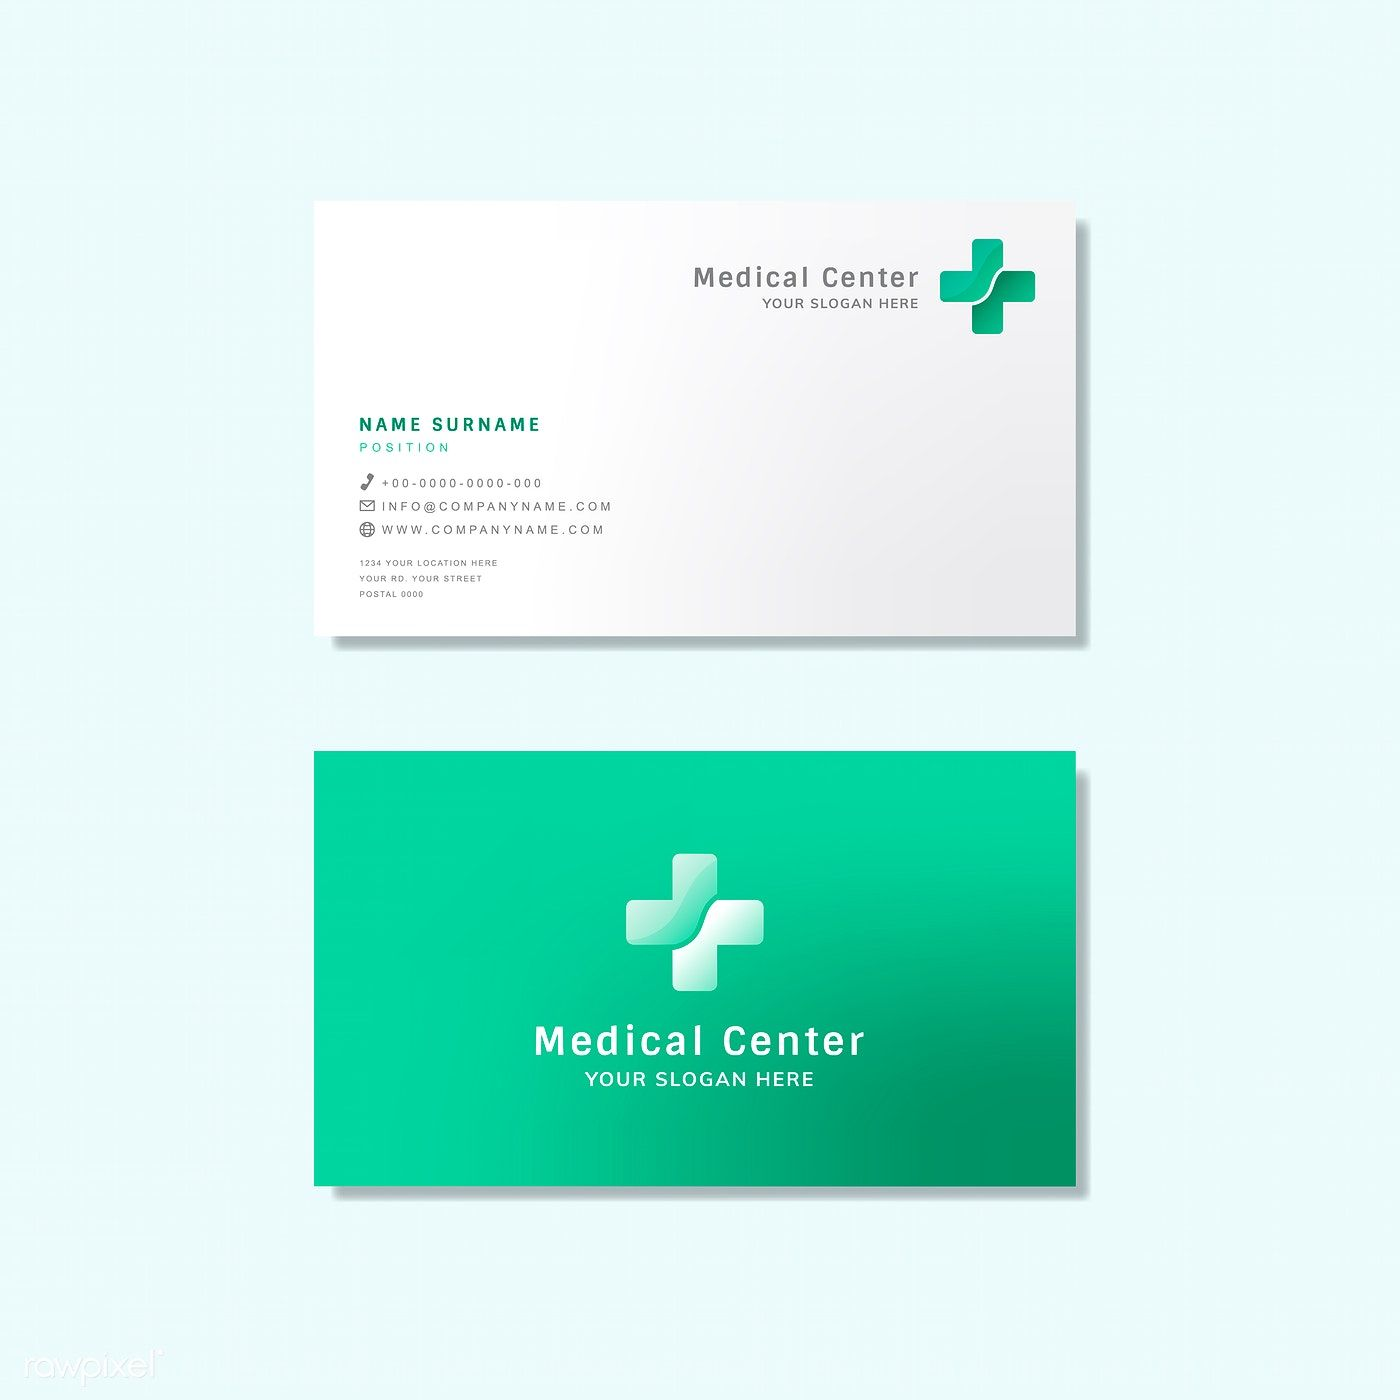 Medical Professional Business Card Design Mockup Free Image By